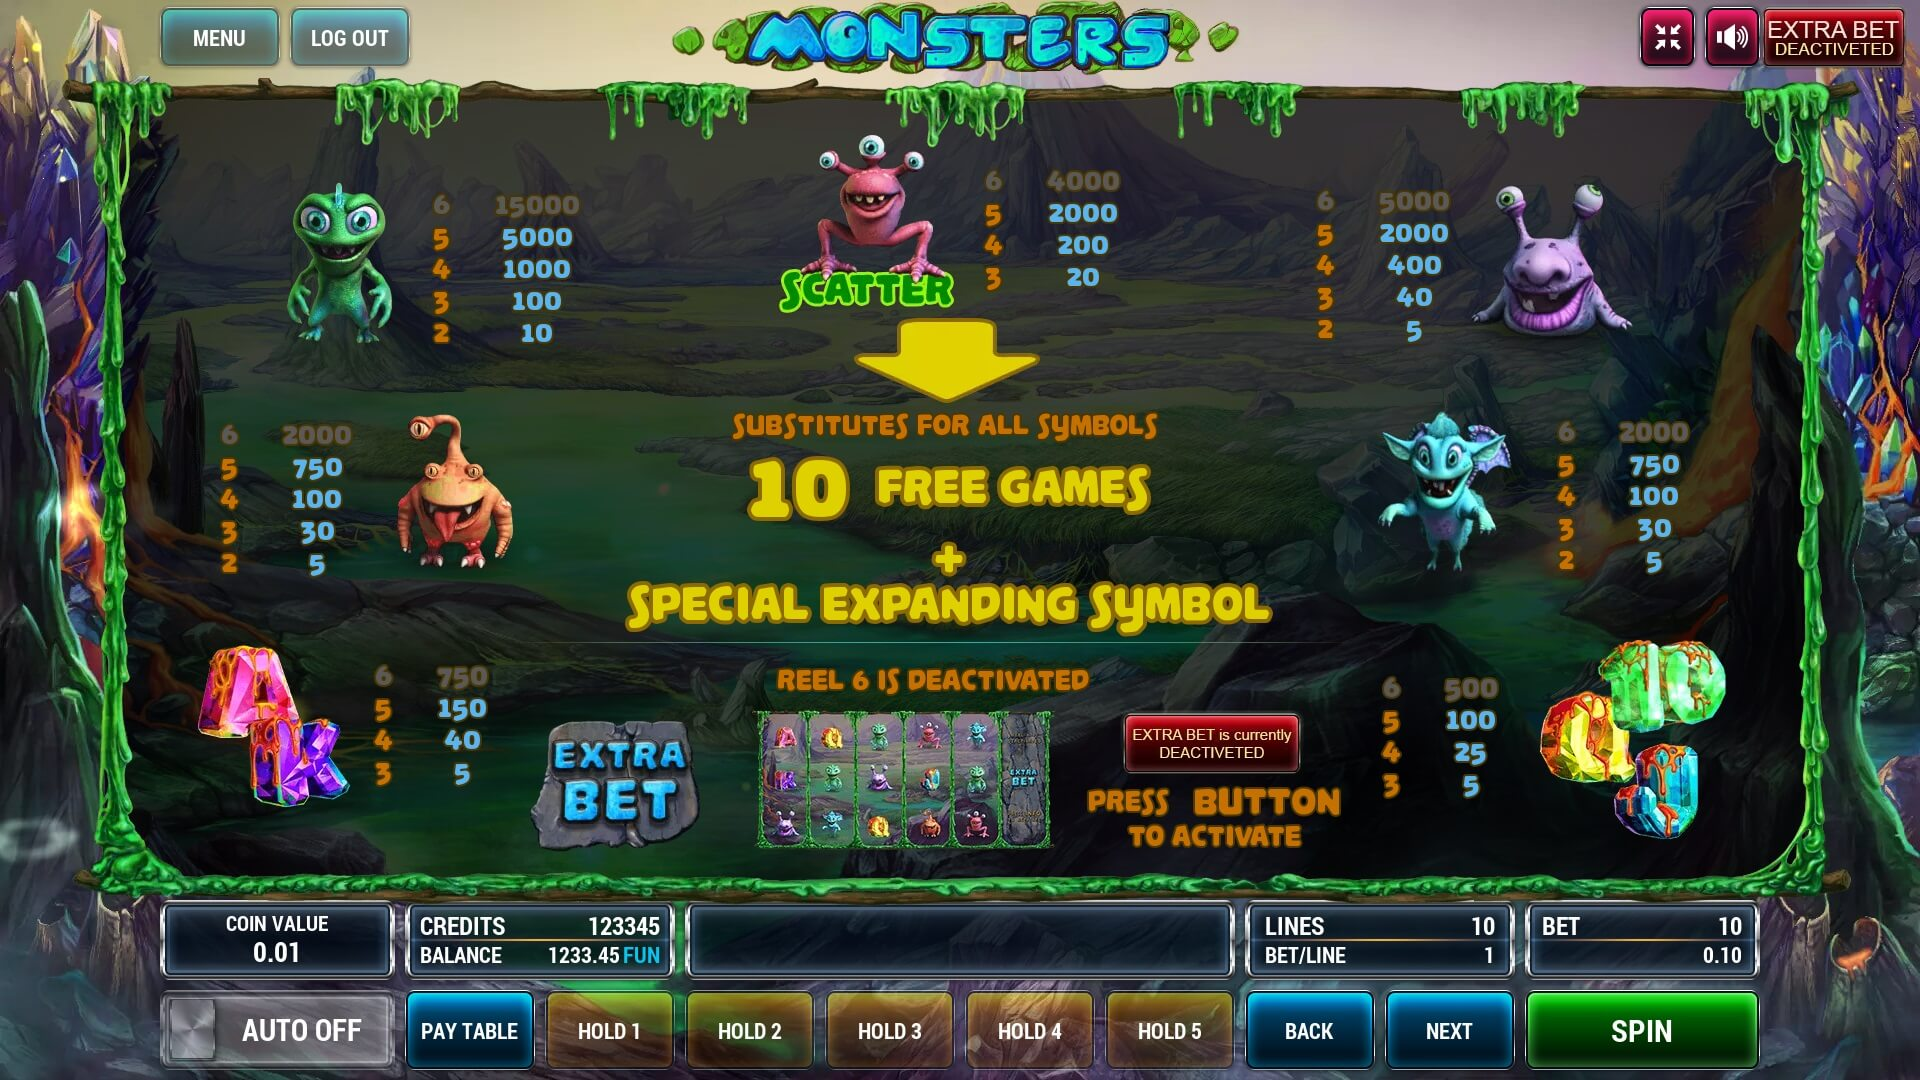 Monsters screenshot 3